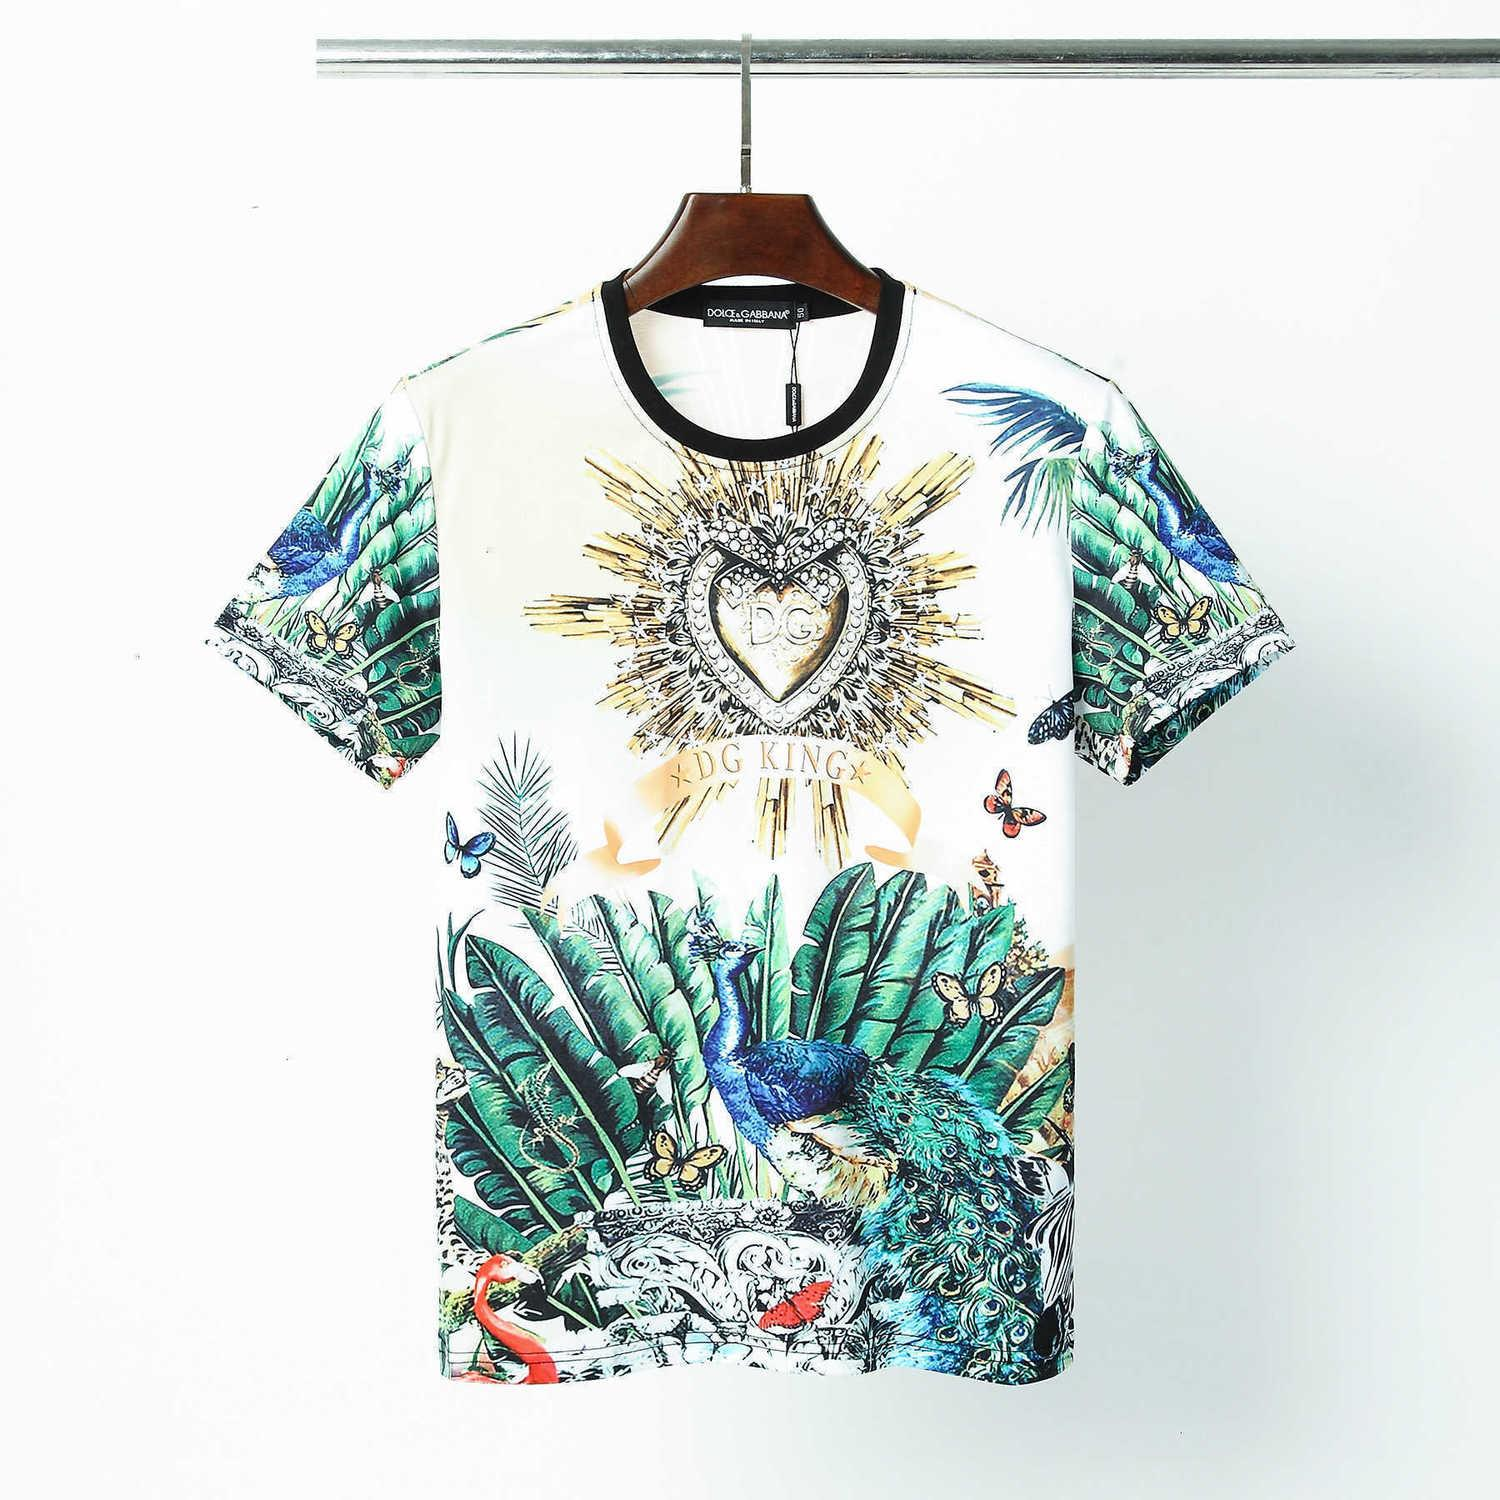 Asian size t shirts for men unisex short sleeve men women tops fascinating classic individuality cool vogue fad